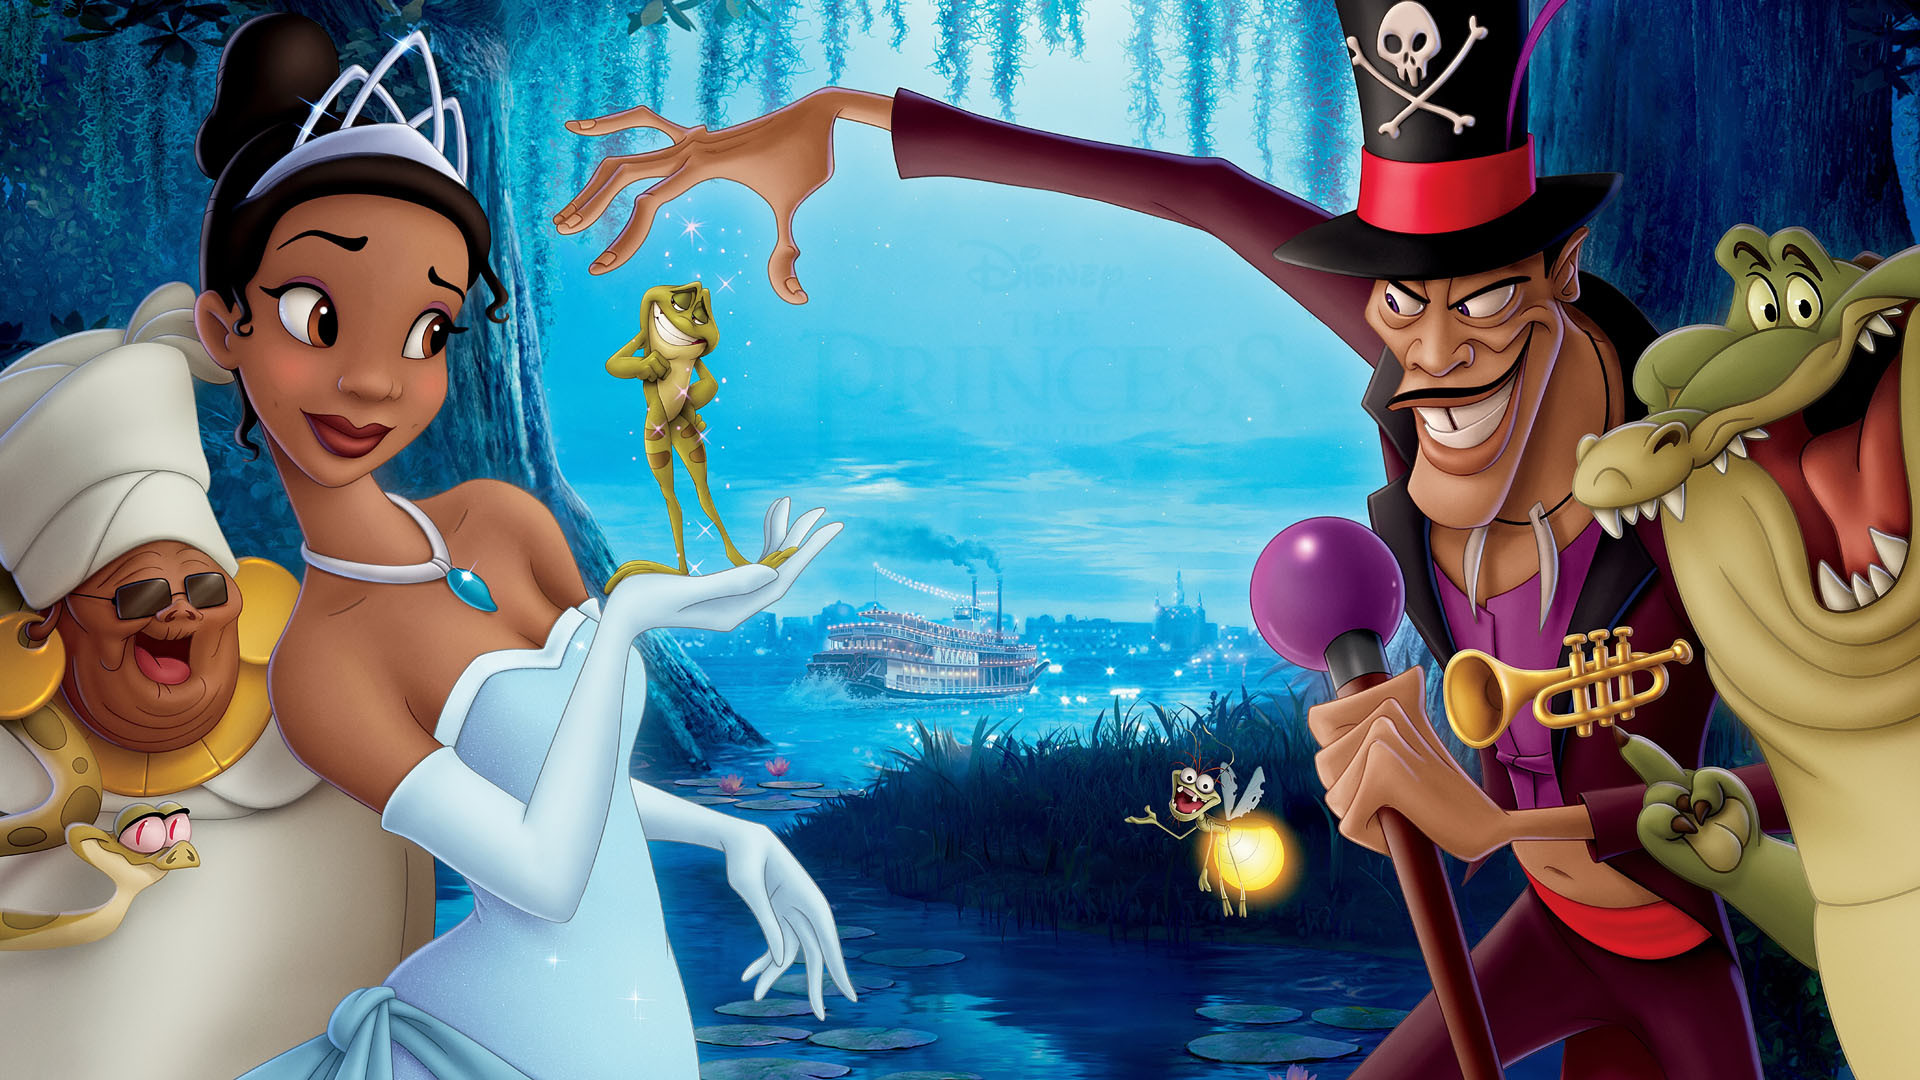 The Princess and the Frog Wallpapers  Best Wallpapers